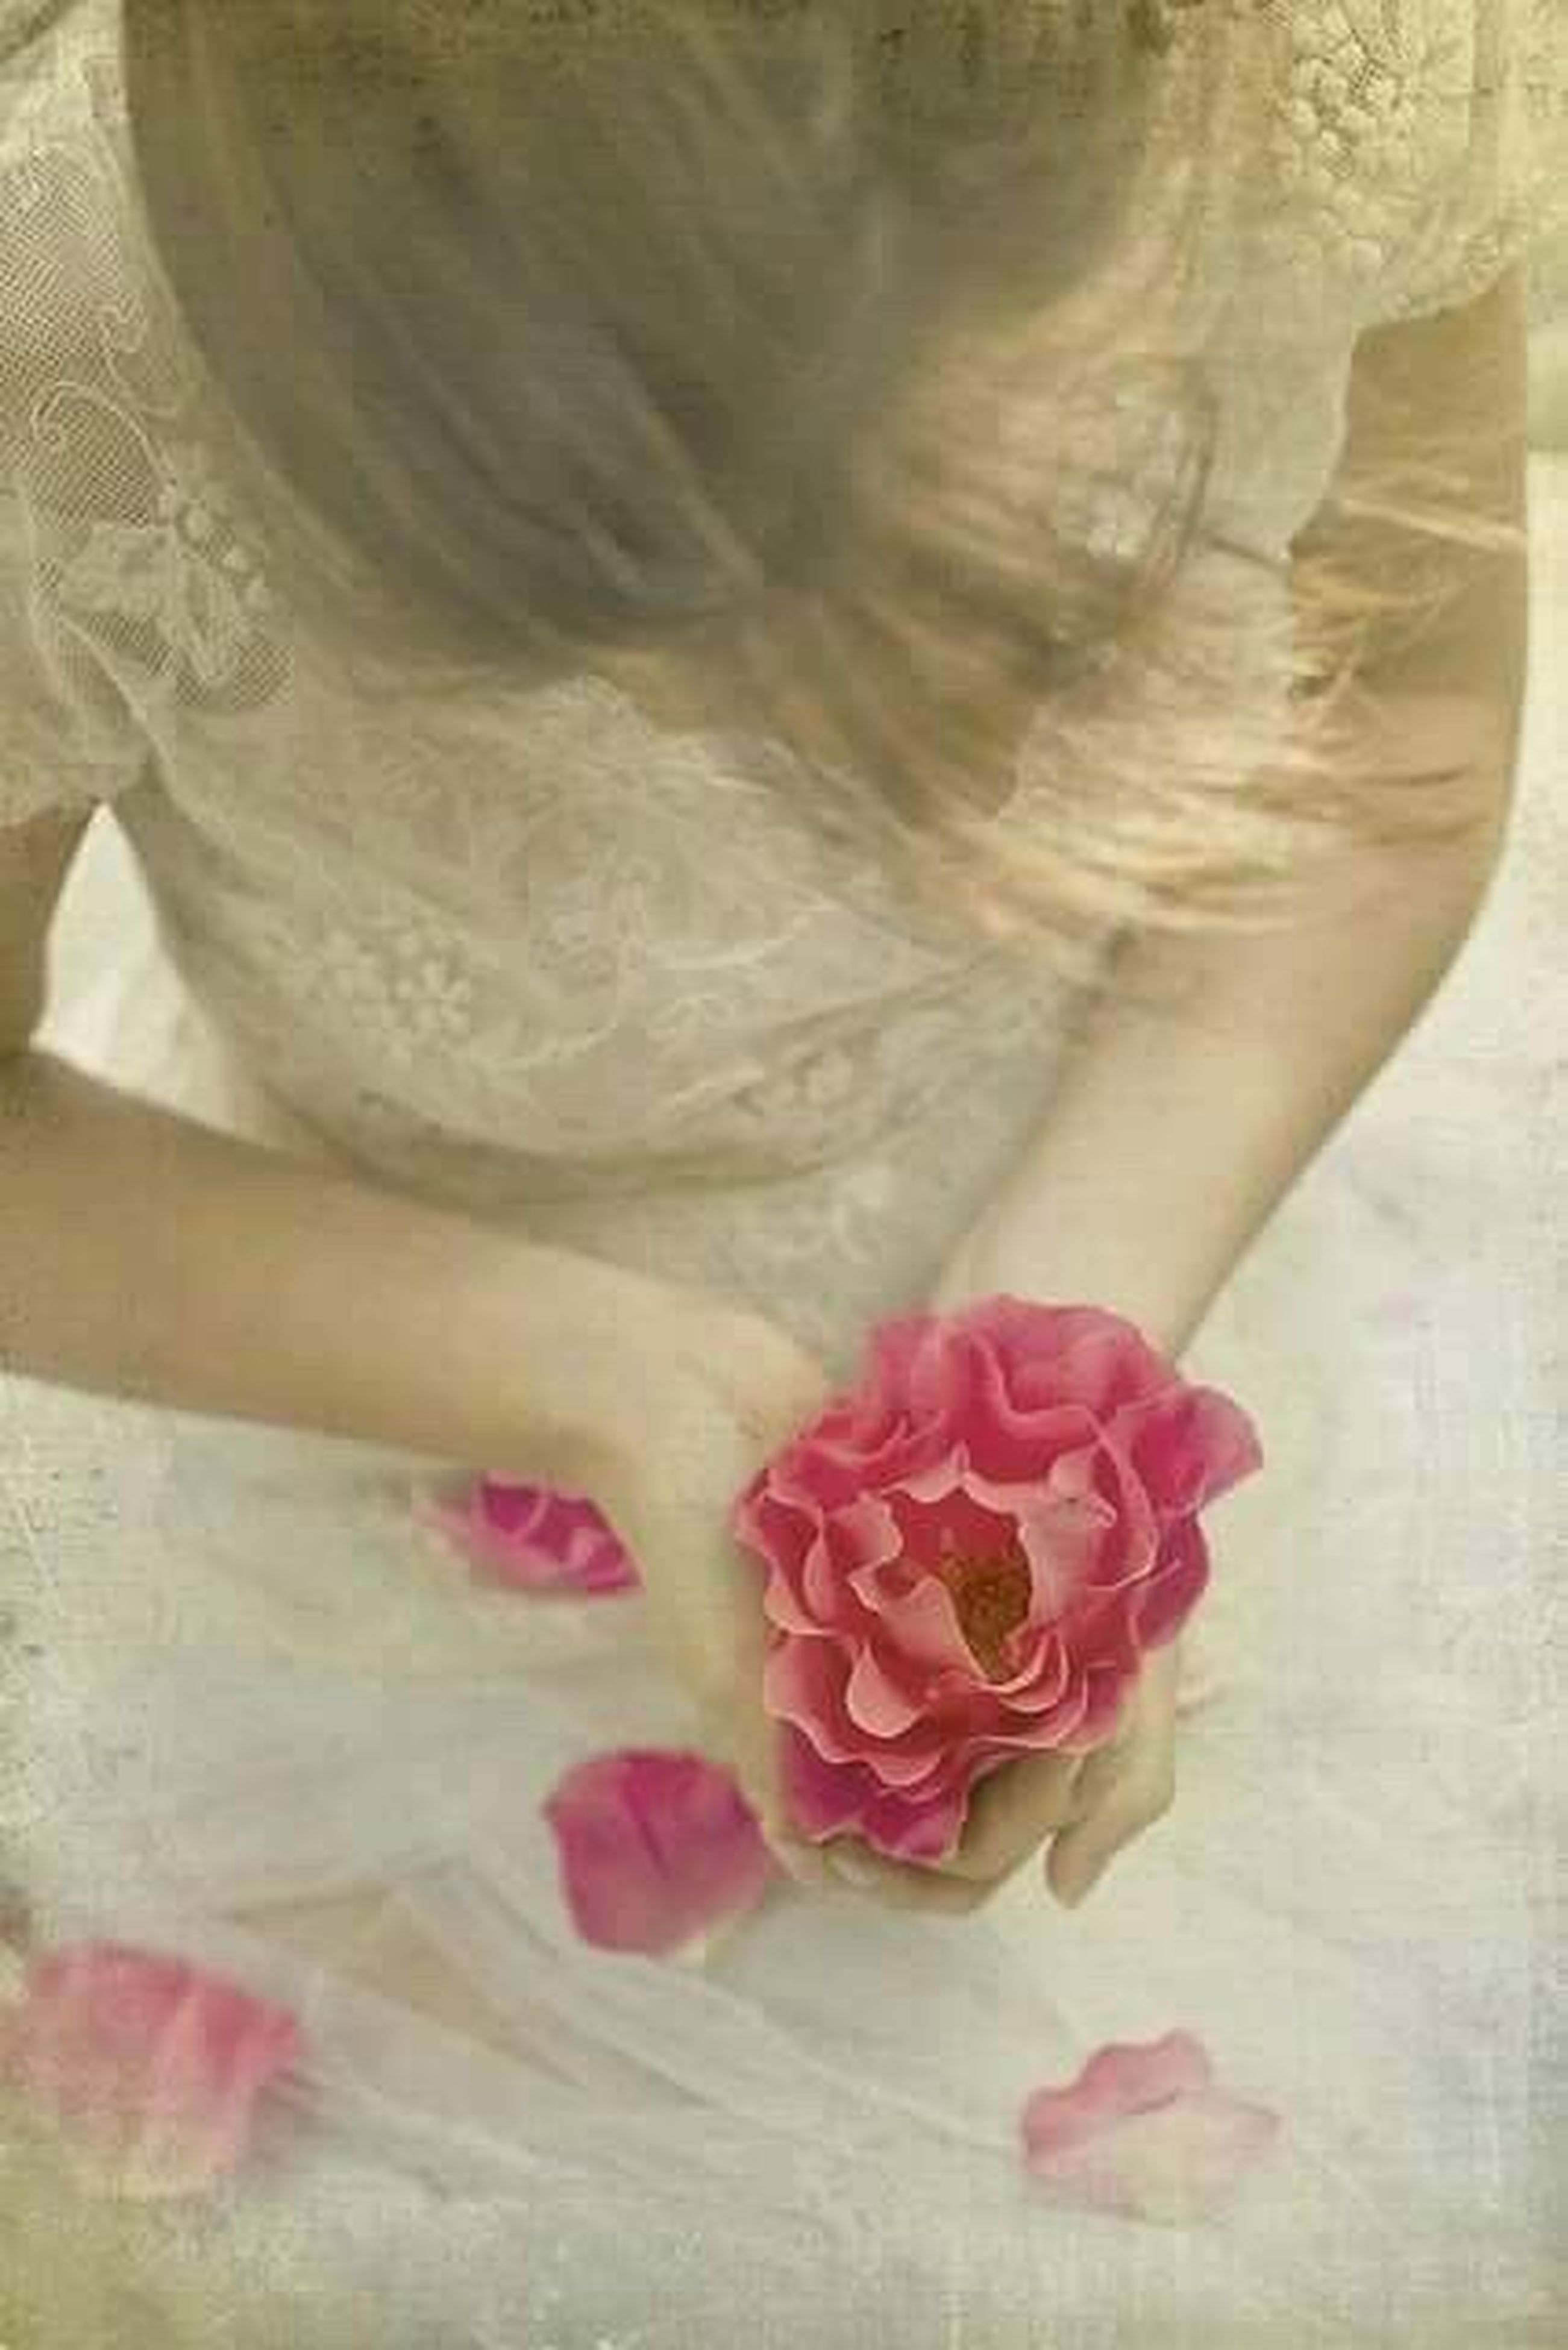 flower, rose - flower, pink color, bride, wedding, bouquet, wedding dress, beauty, close-up, nature, freshness, women, indoors, flower head, adult, fragility, people, beauty in nature, adults only, day